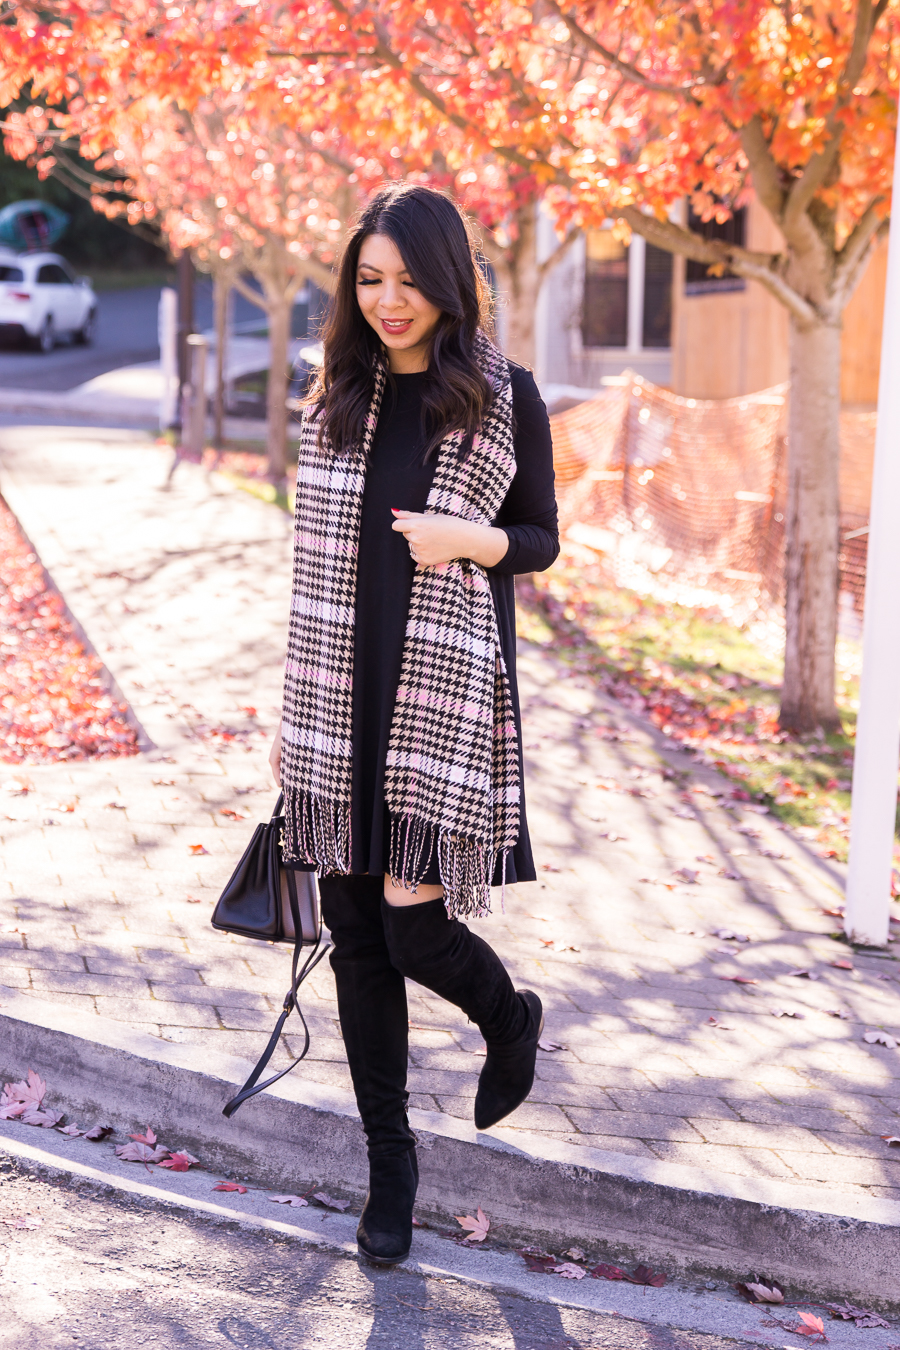 b4141b8764ae justatinabit-old-navy-swing-dress-nordstrom-bp-plaid -scarf-marc-fisher-over-the-knee-boots-fall-outfit-seattle-fashion-blog-2